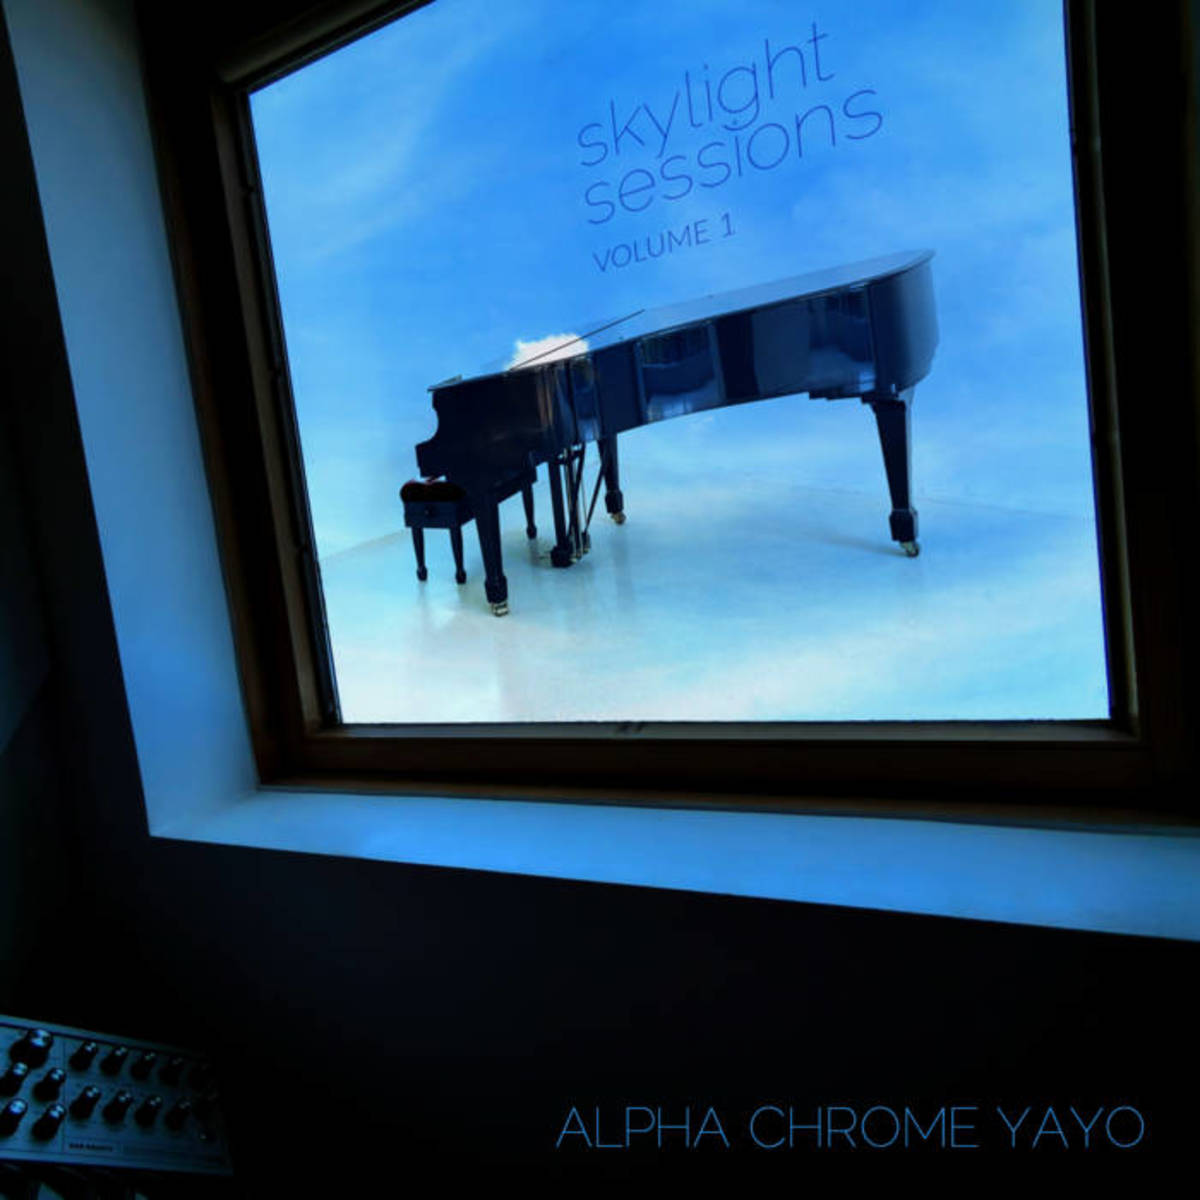 synth-album-review-skylight-sessions-by-alpha-chrome-yayo